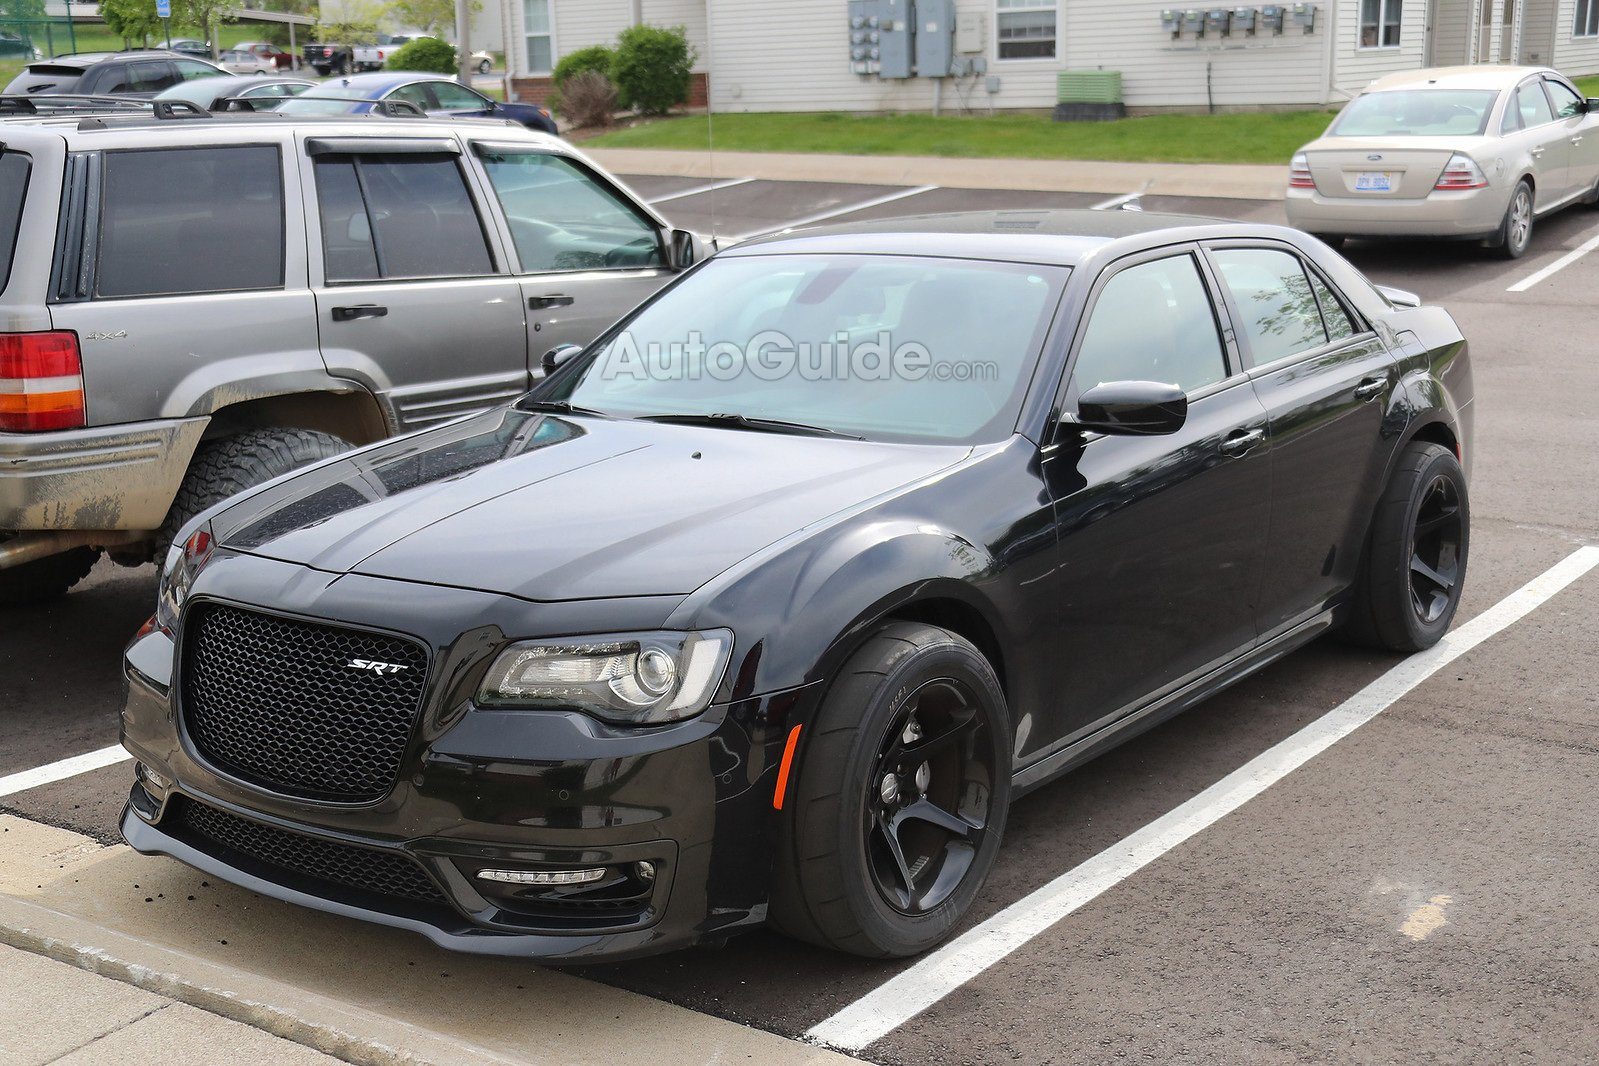 Chrysler 300 Srt Spied 1 Copy